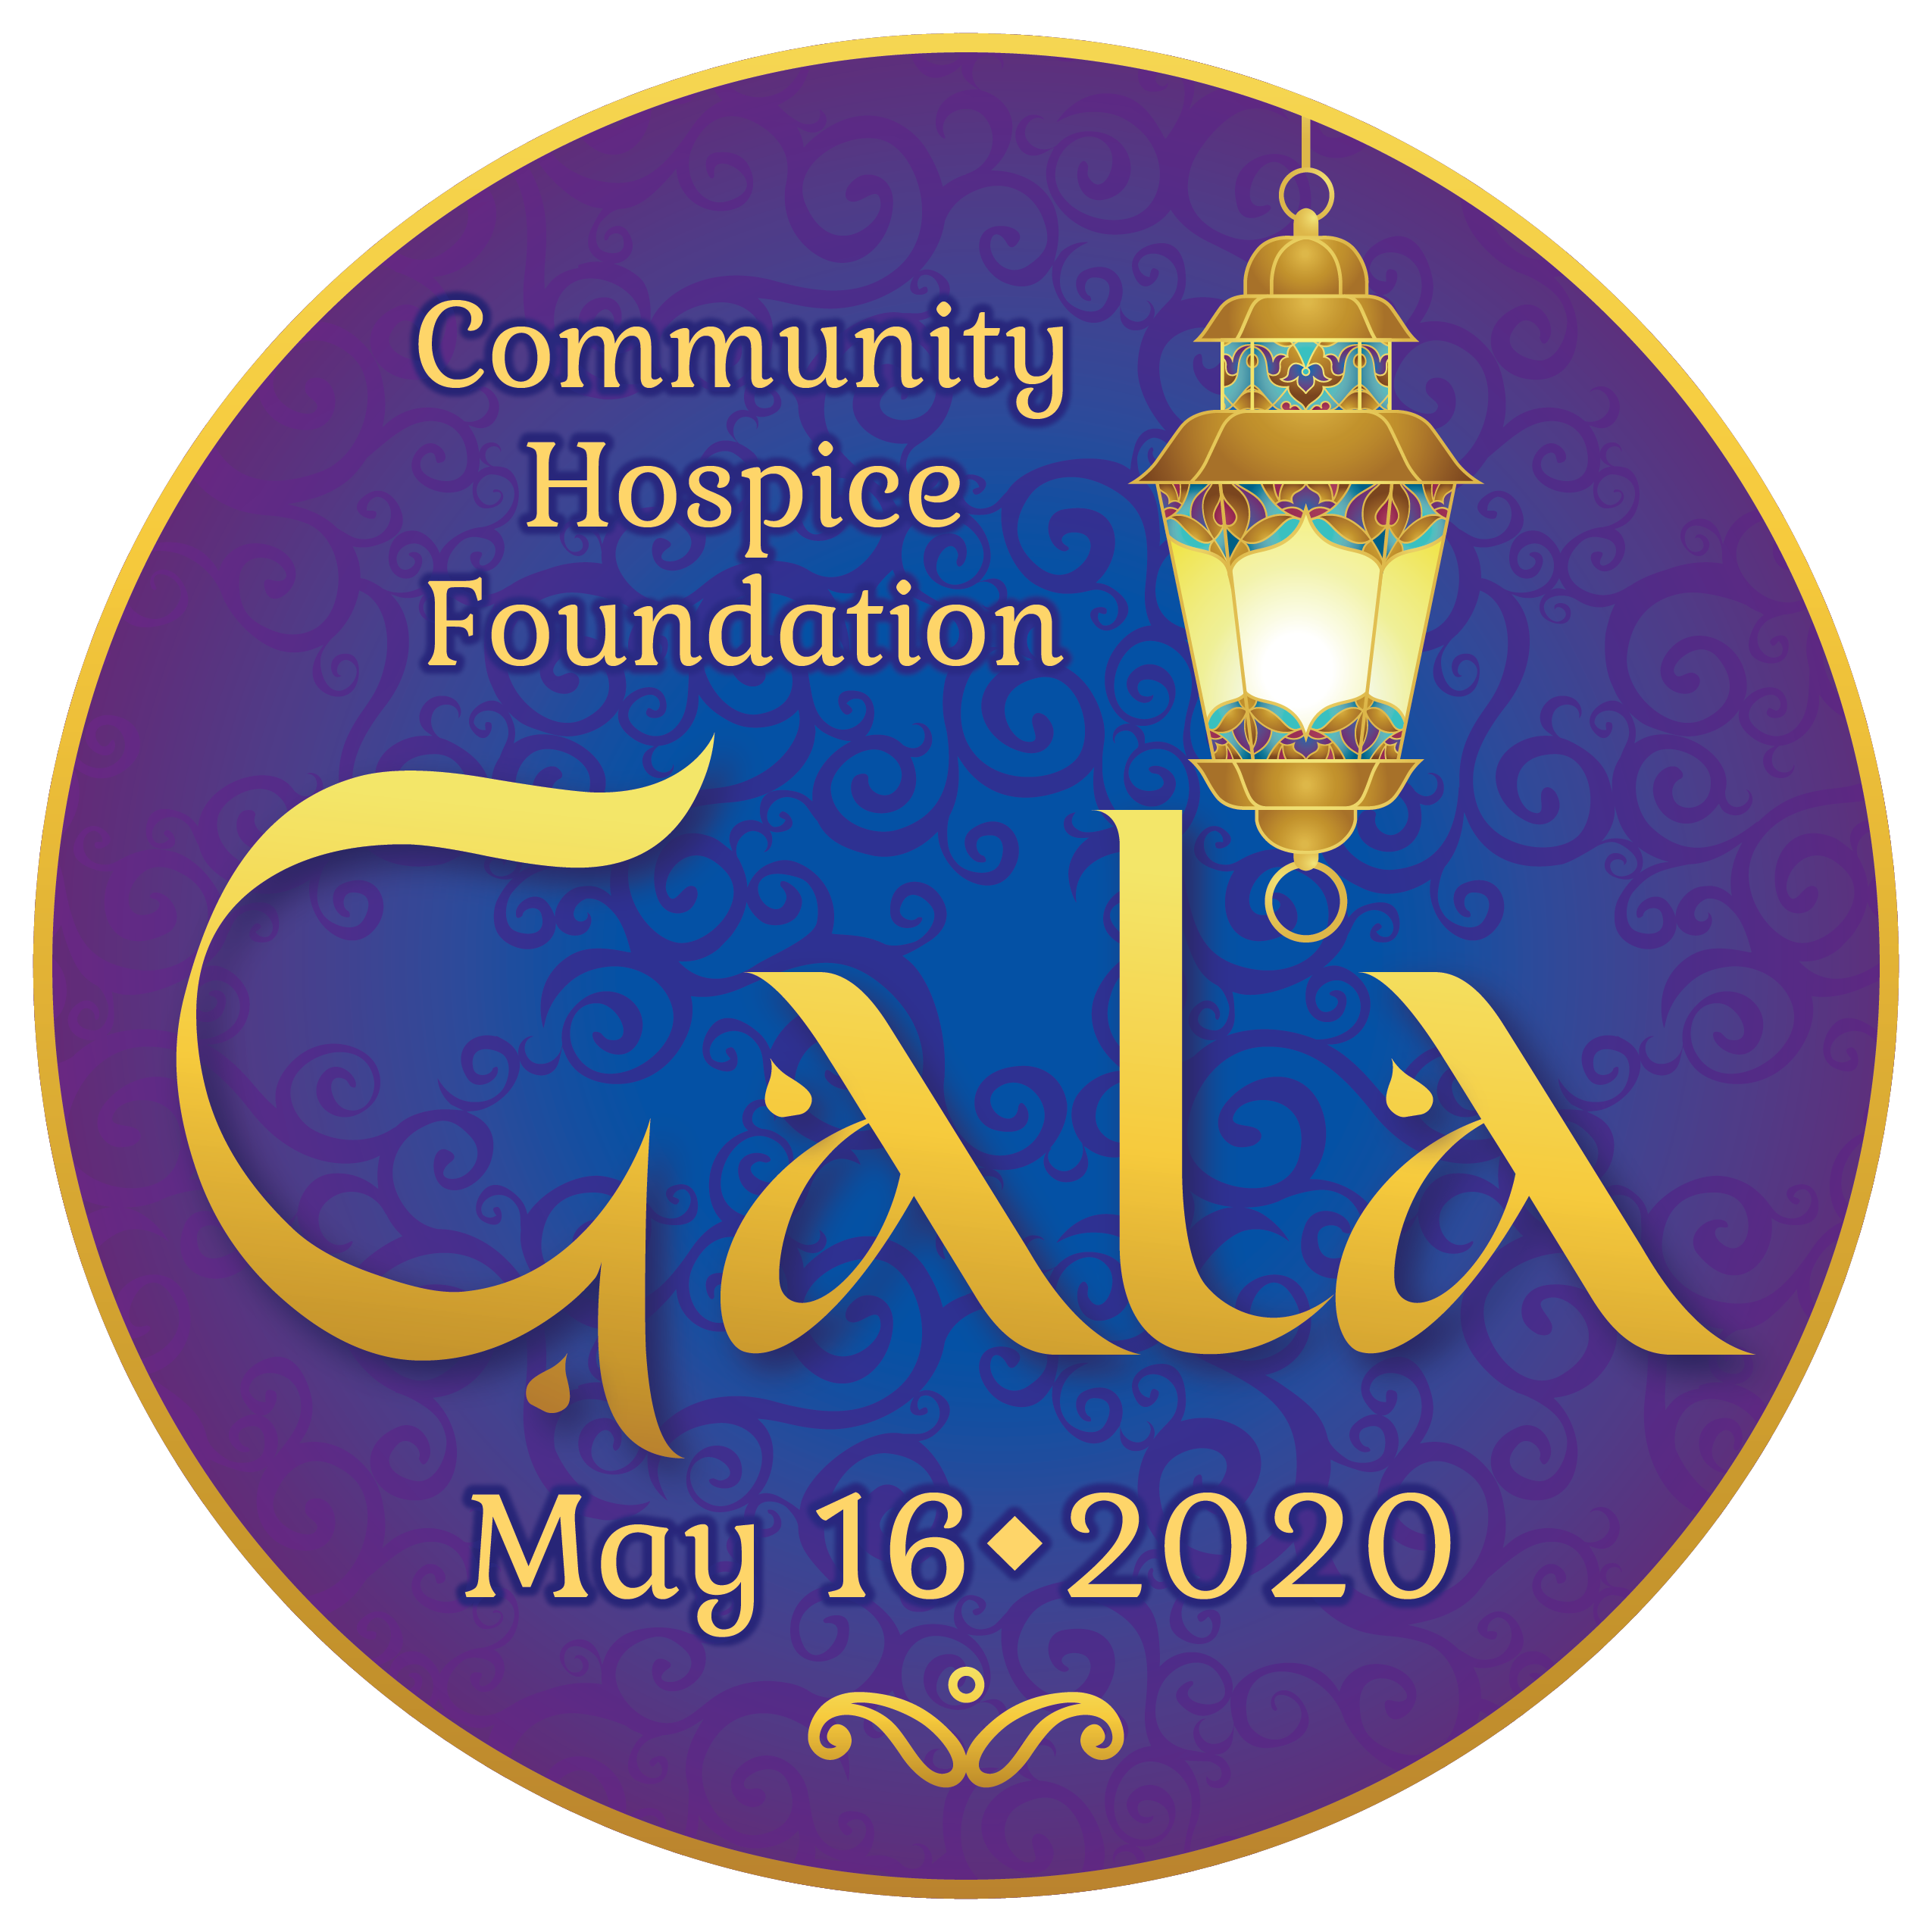 19th Annual Community Hospice Foundation Gala